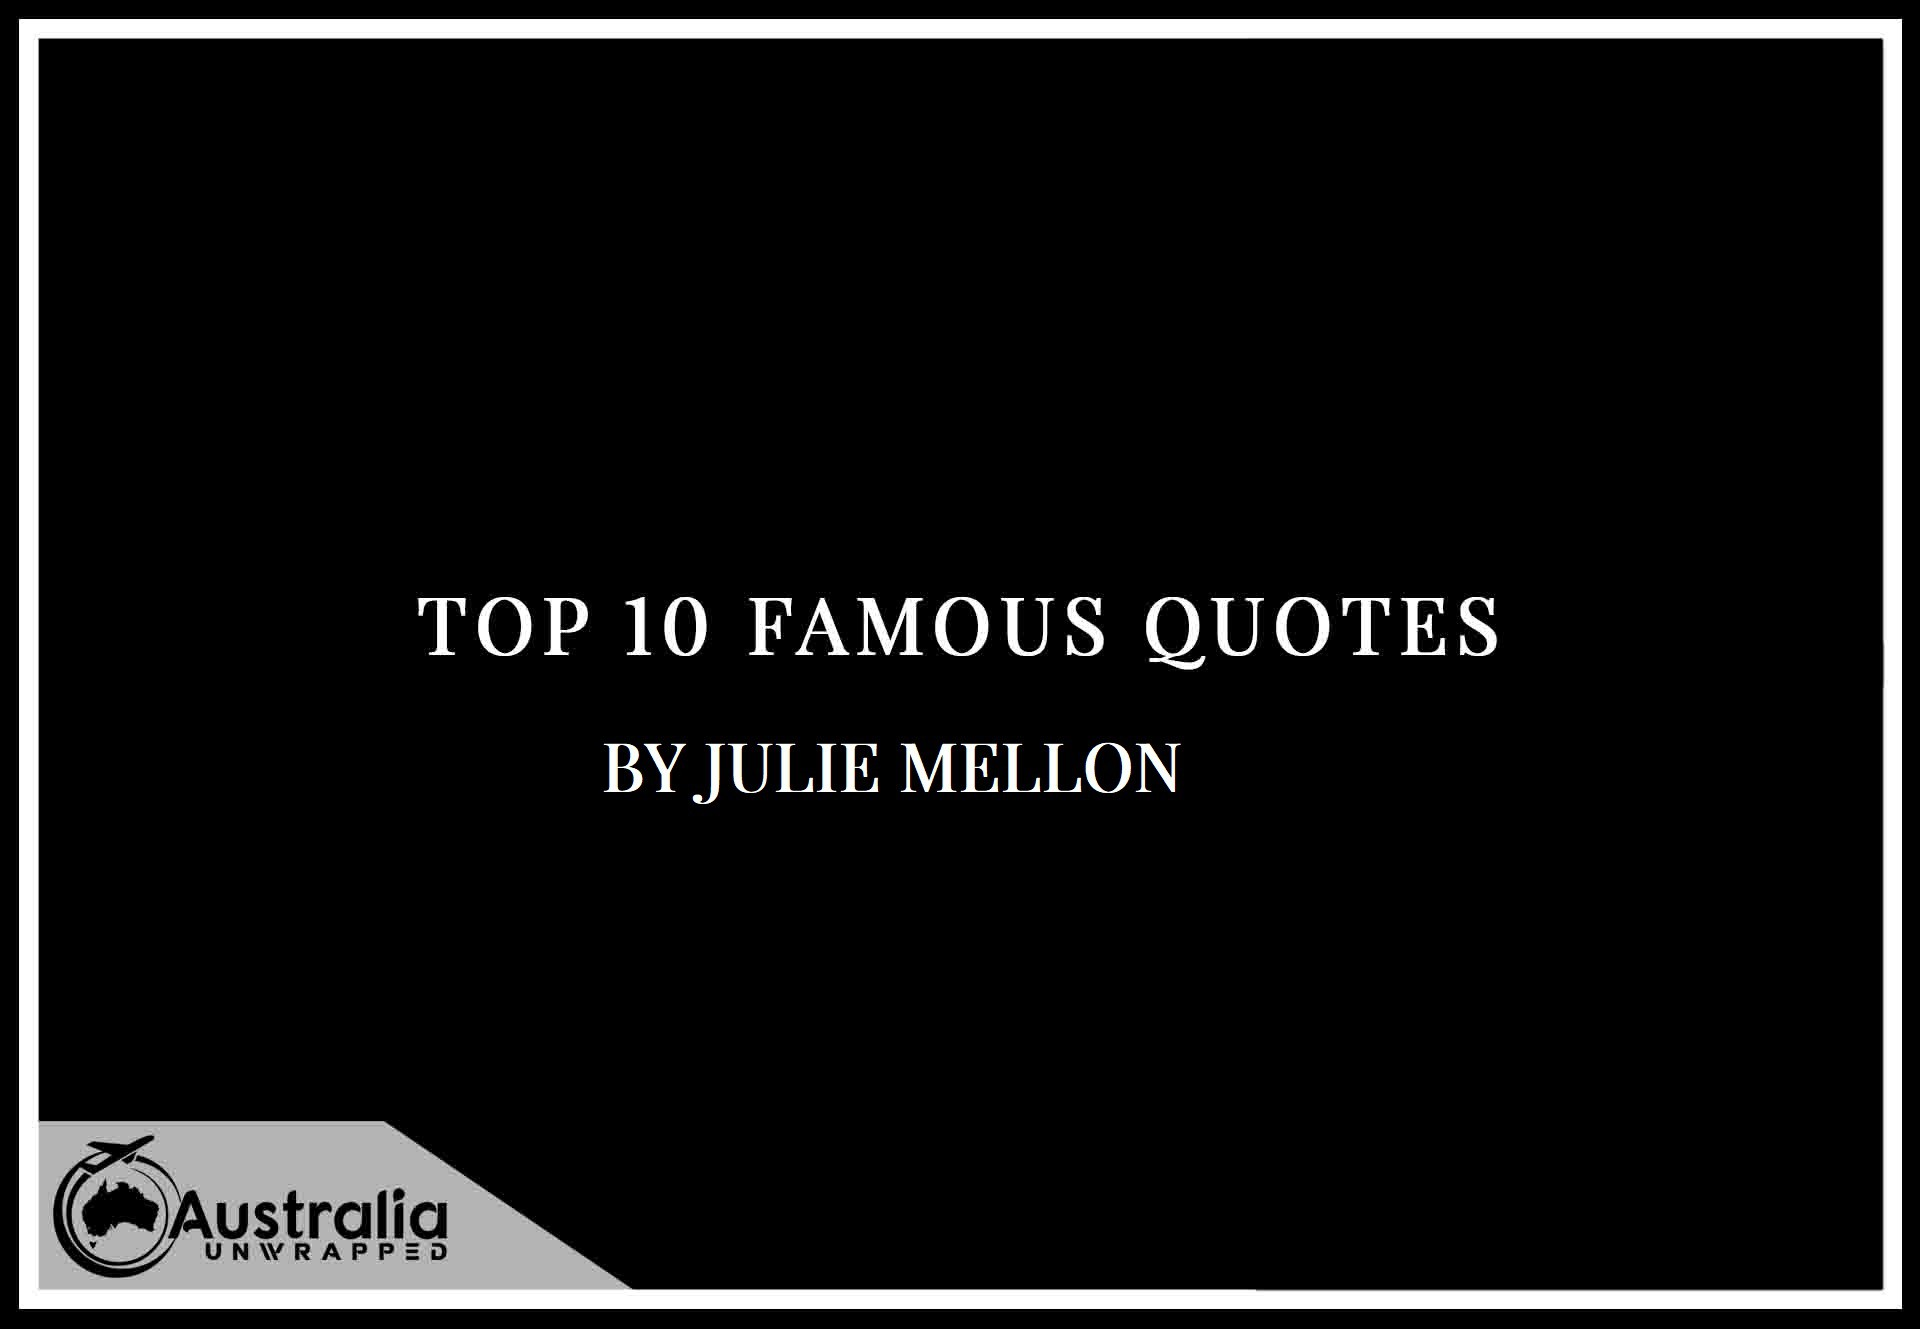 Top 10 Famous Quotes by Author Julie Mellon